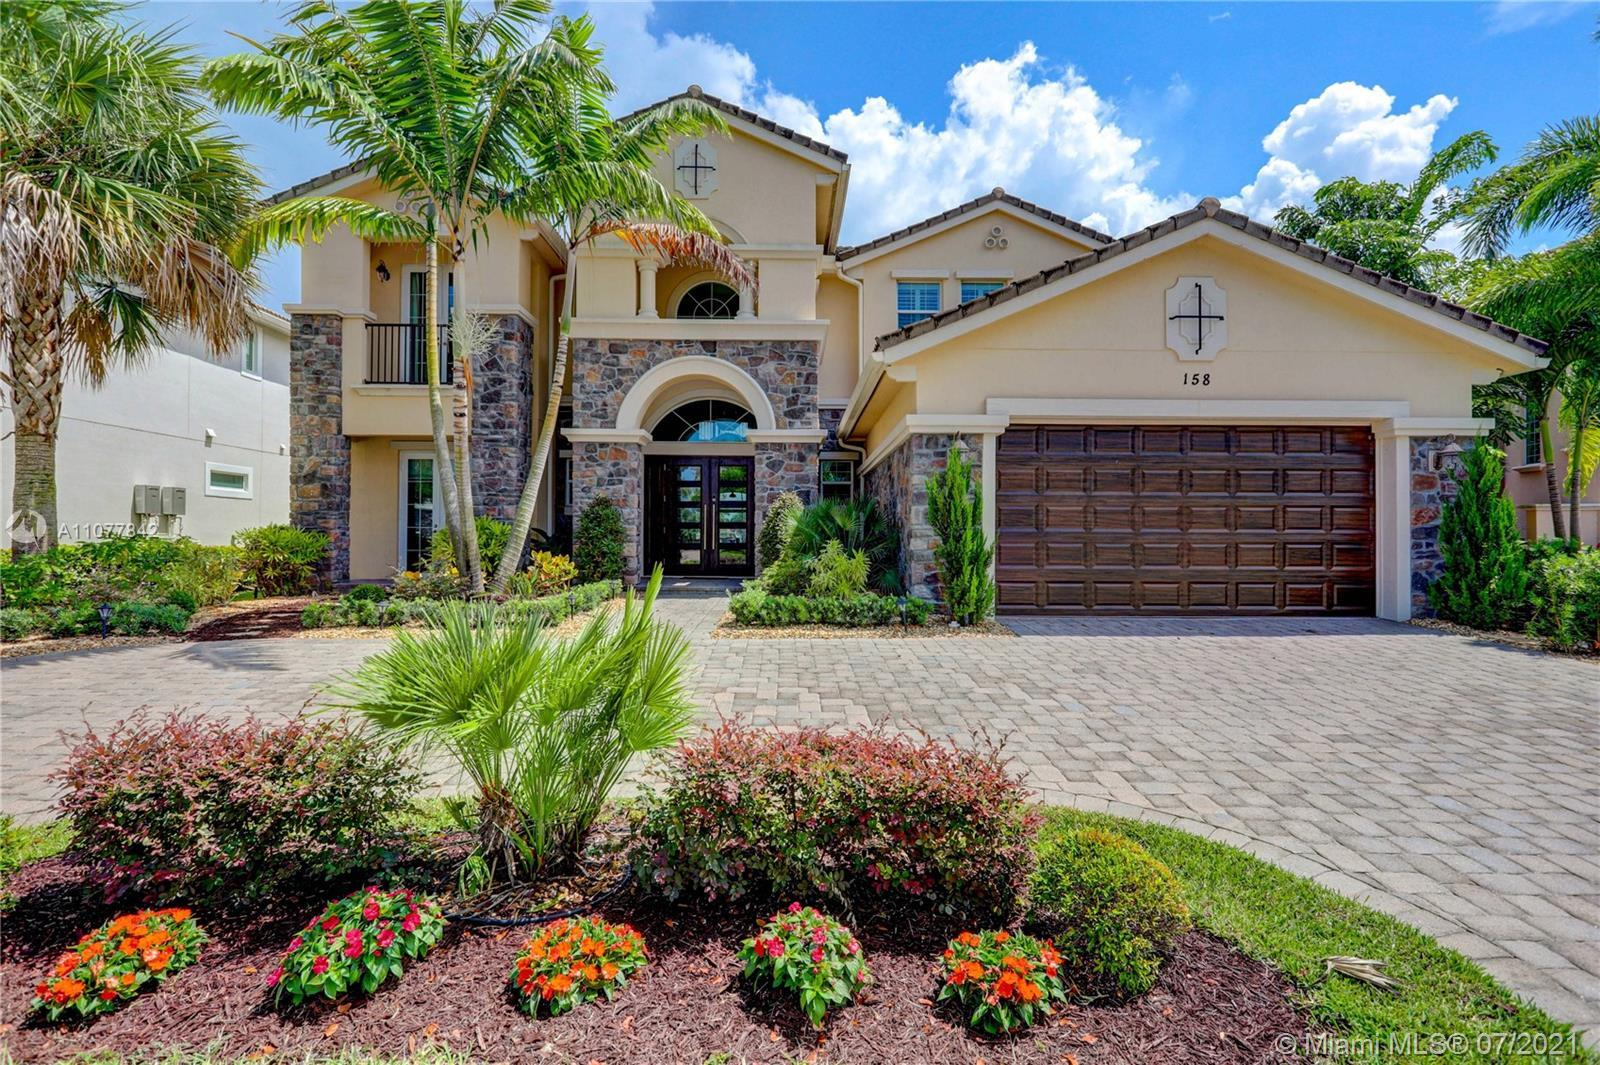 Enjoy the splendor of this fabulous home In Jupiter Country Club.  6 BR expanded model offers over 5